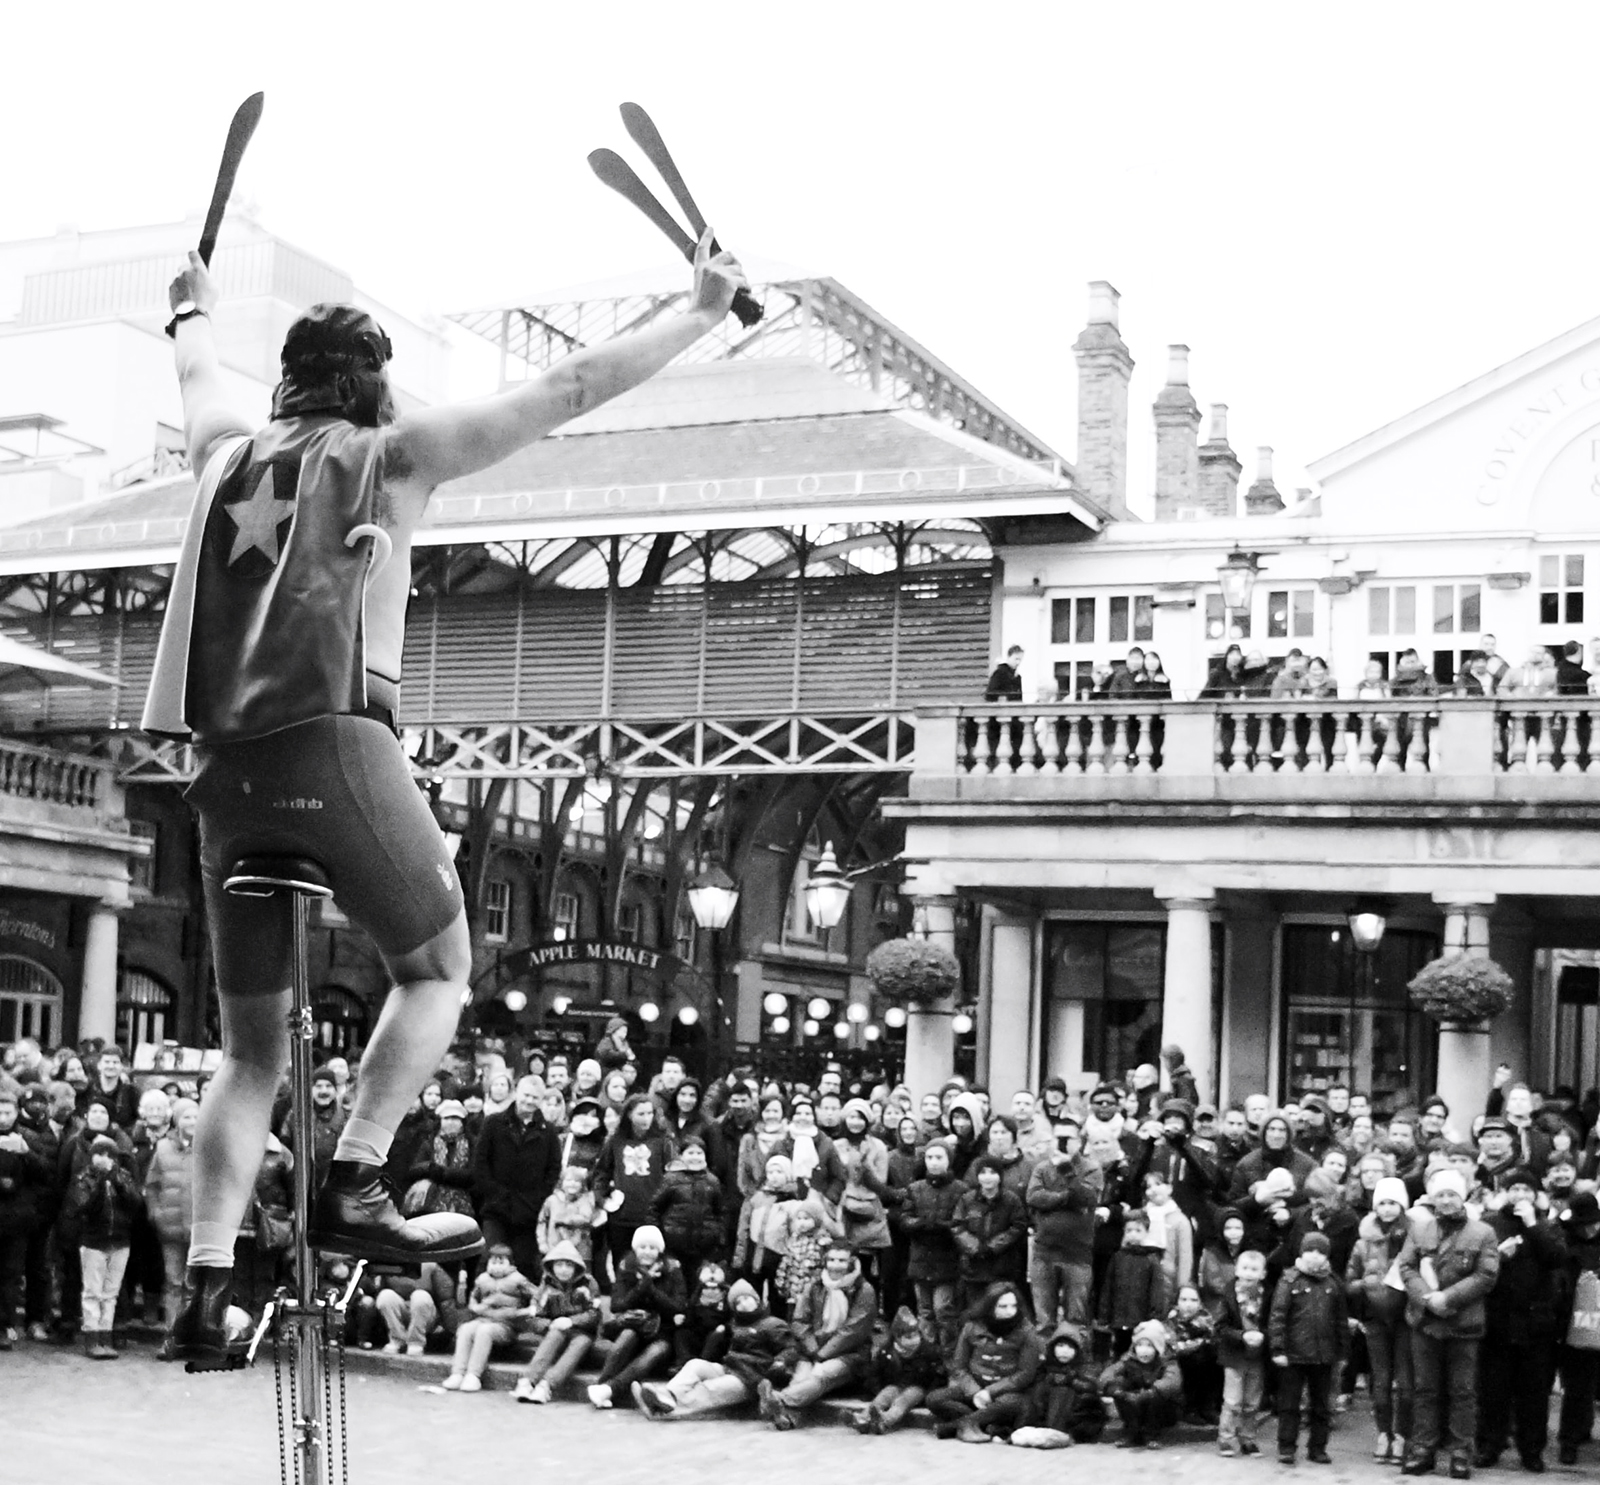 Black and white image of juggler on a unicycle in front of a crowd